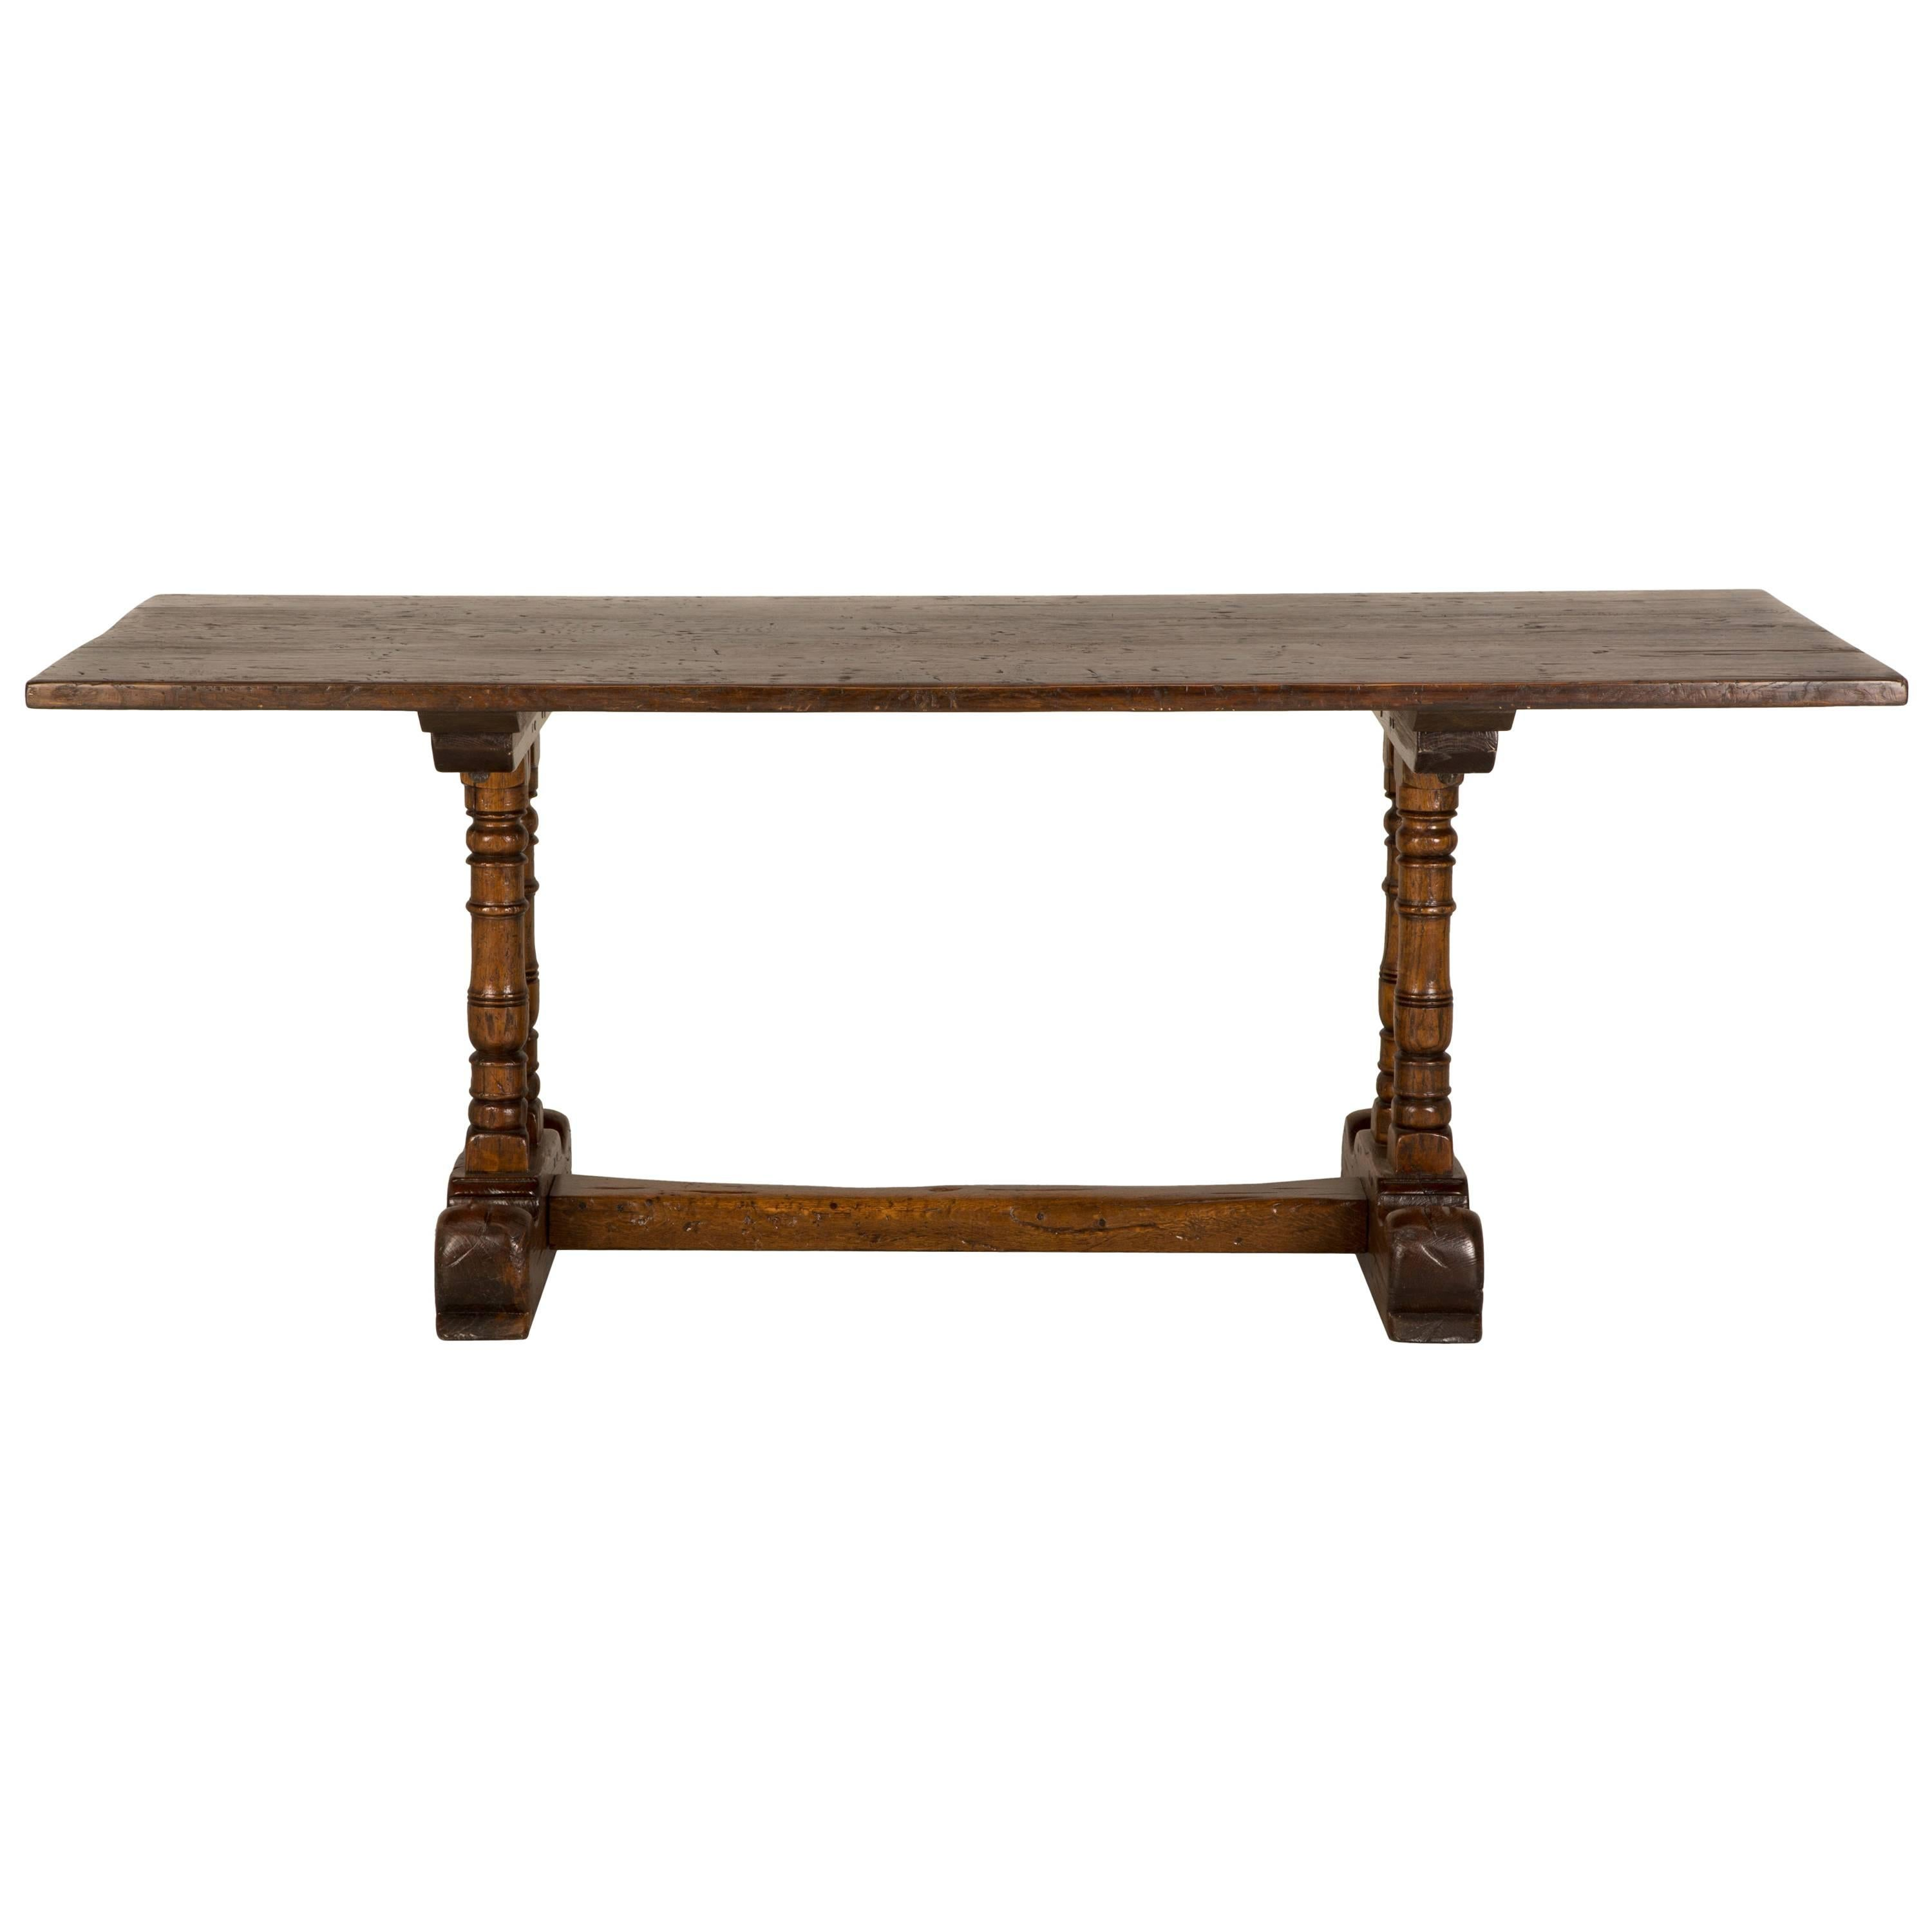 Antique French Trestle Dining Table In Solid Oak, Circa 1700s